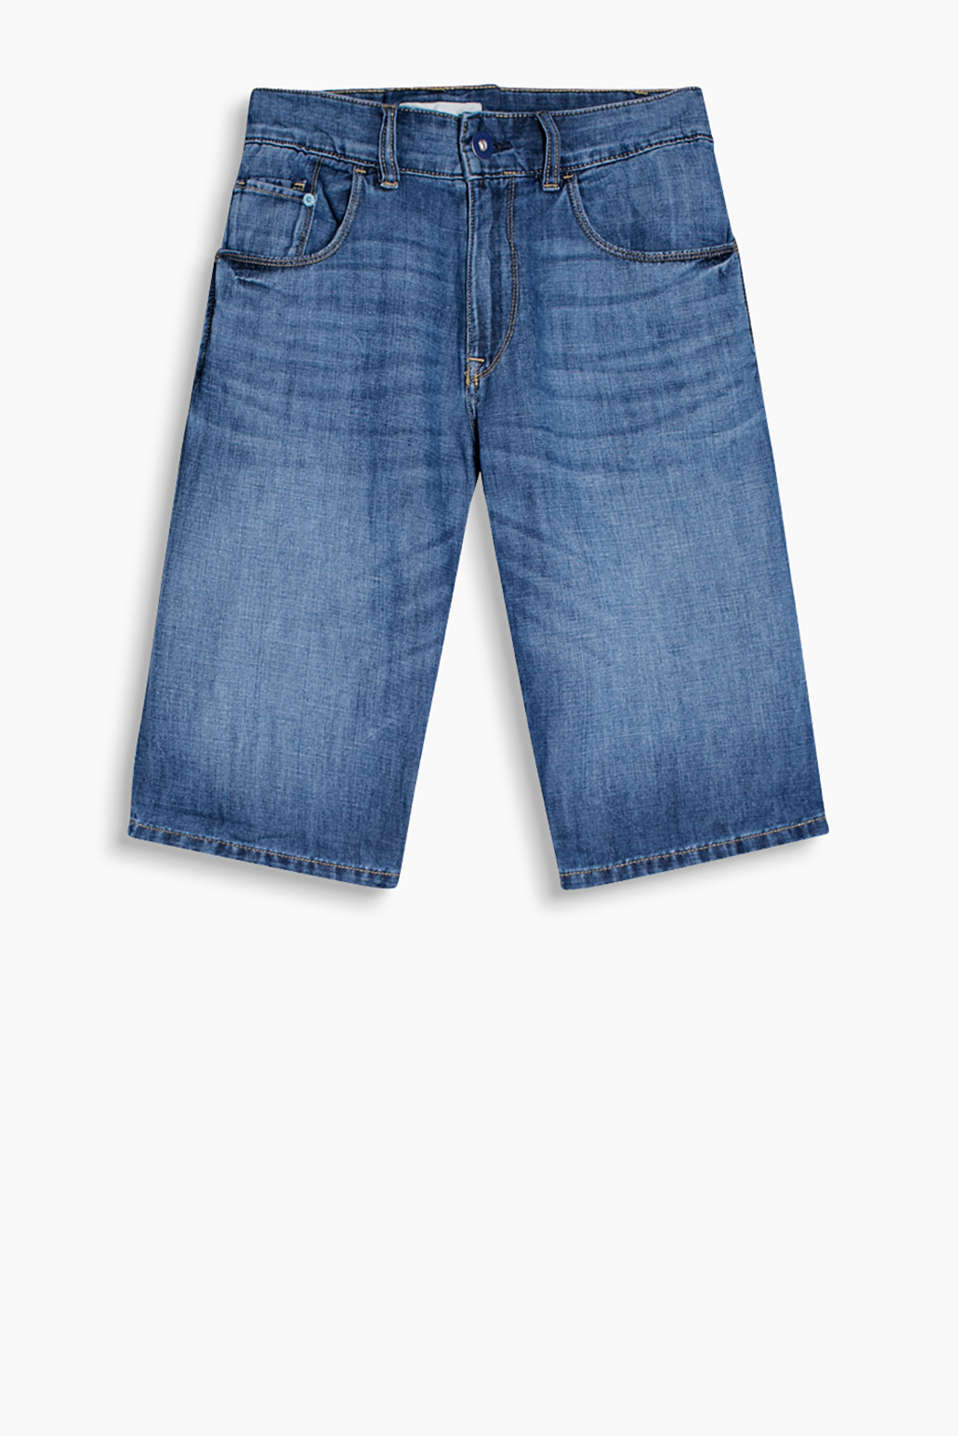 Bermuda shorts with distinctive washed effects in a classic five-pocket style